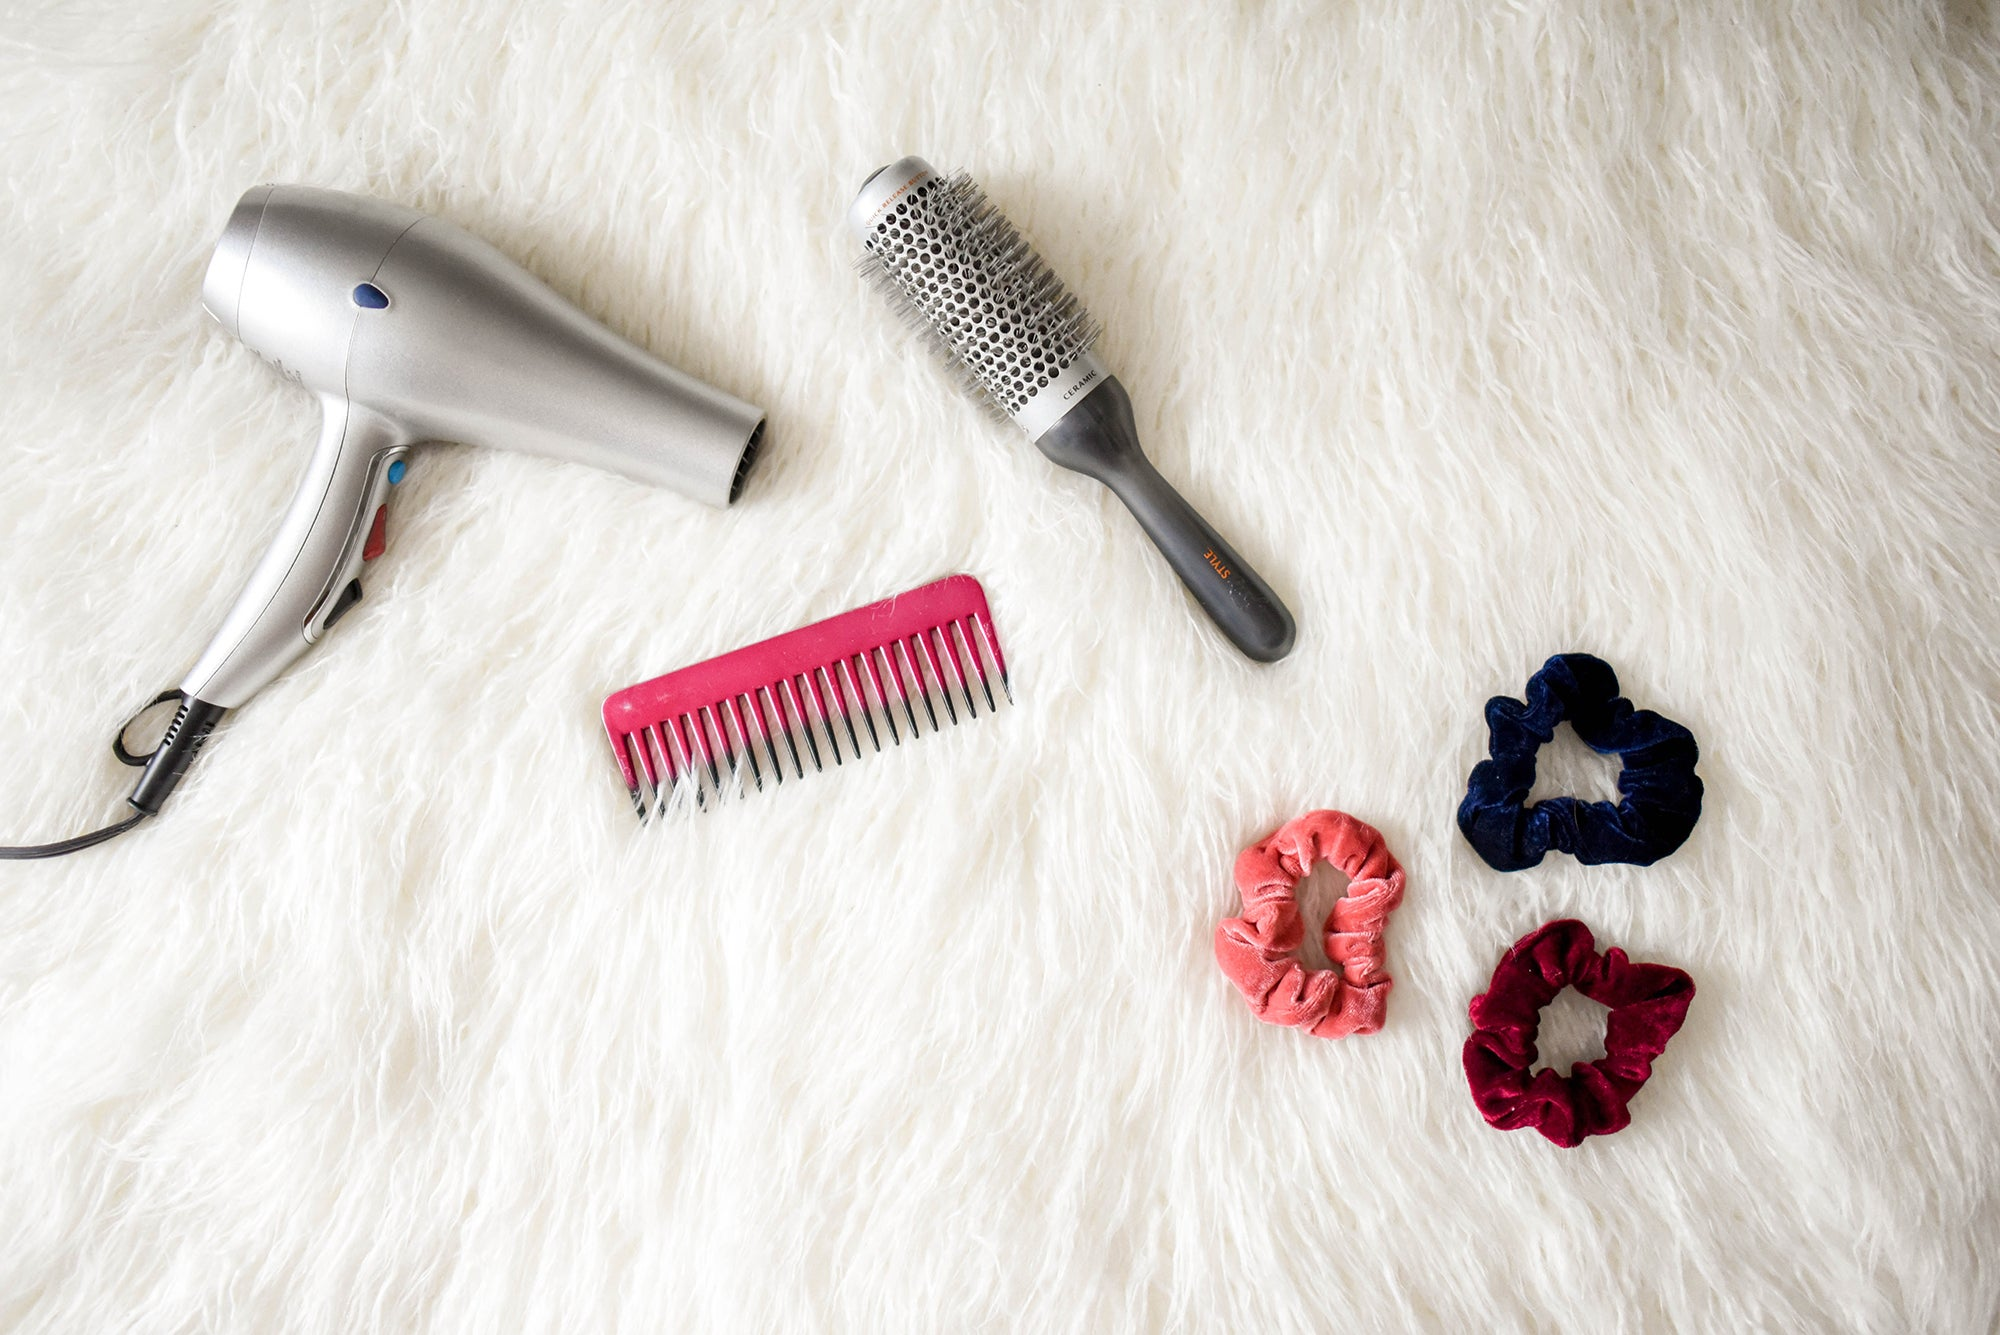 hair dryer, comb, brush, and scrunchies on a furry white rug